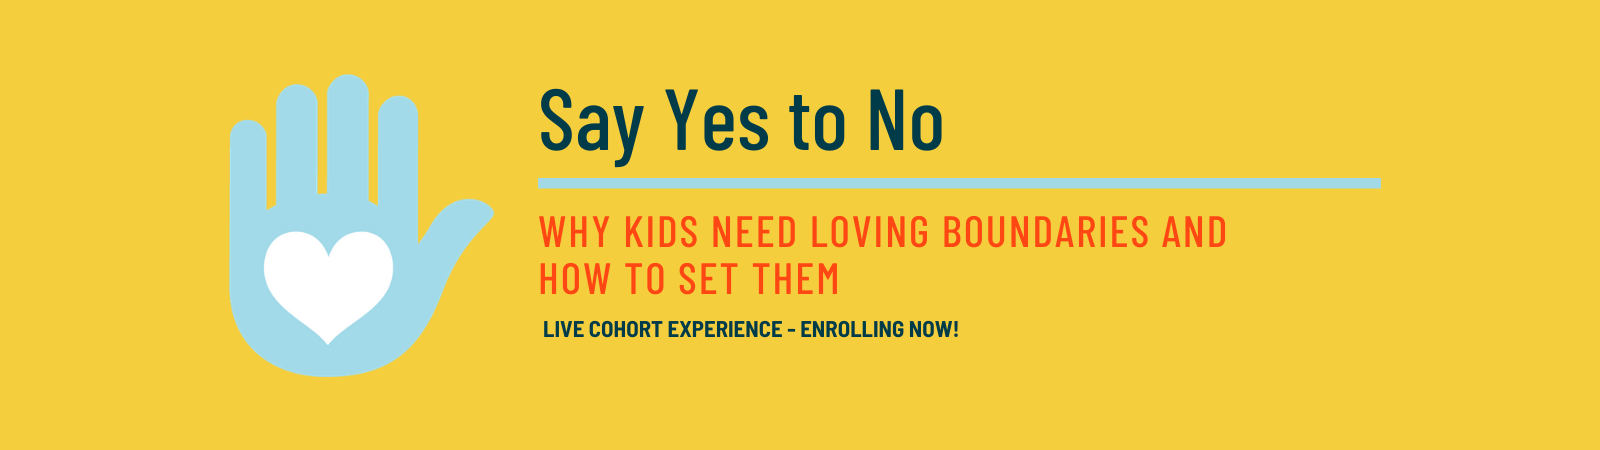 Say Yes To No Why Kids Need Loving Boundaries and How To Set Them